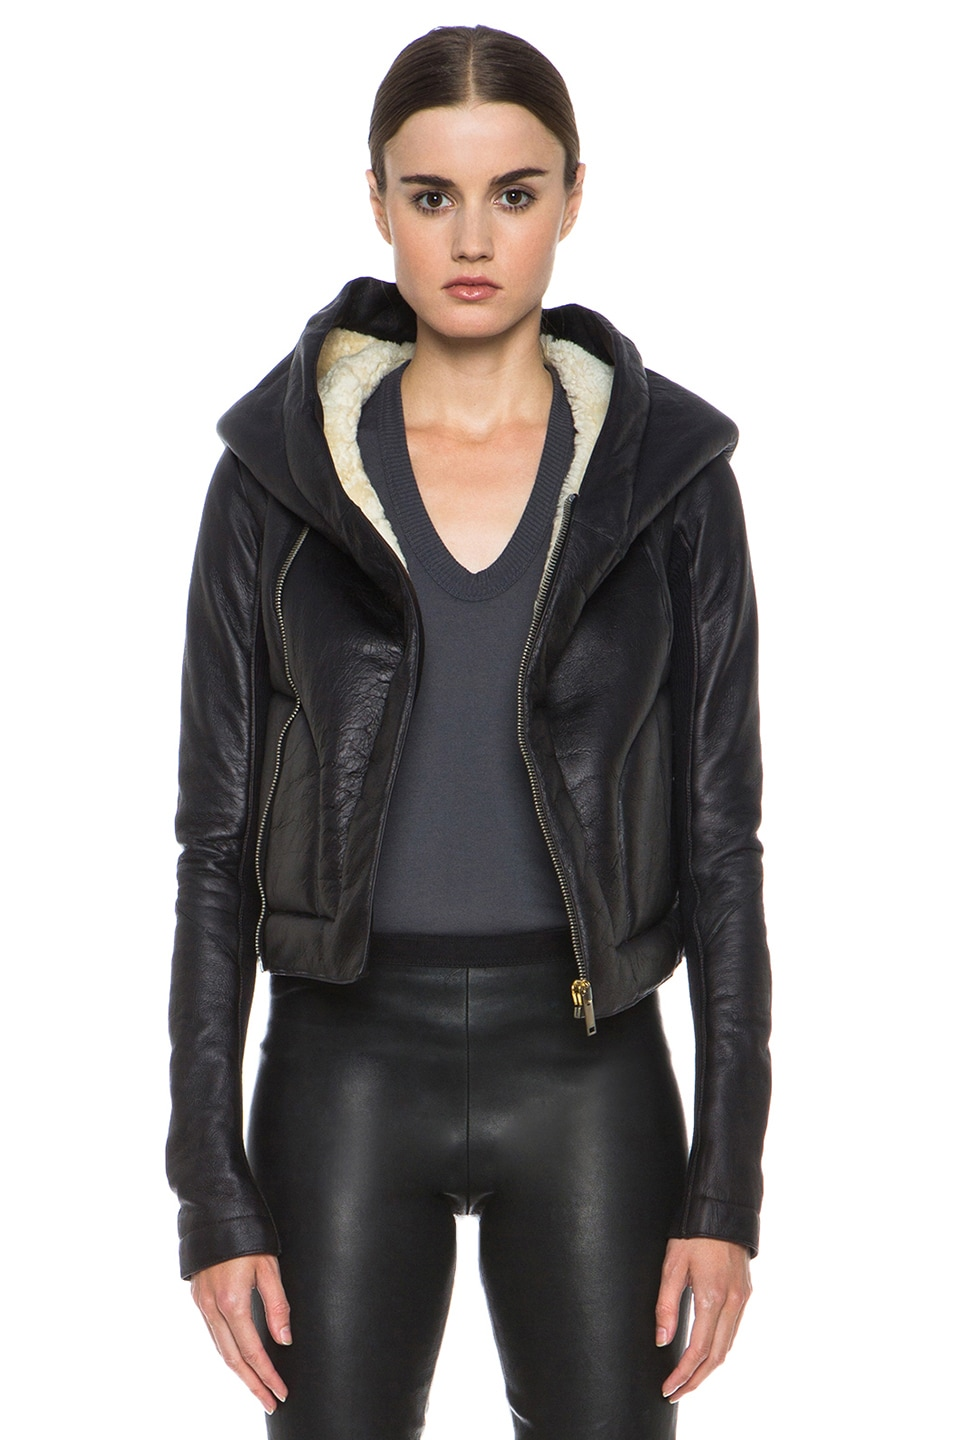 Image 1 of Rick Owens Hooded Biker Leather and Shearling Jacket in Black & Parchment